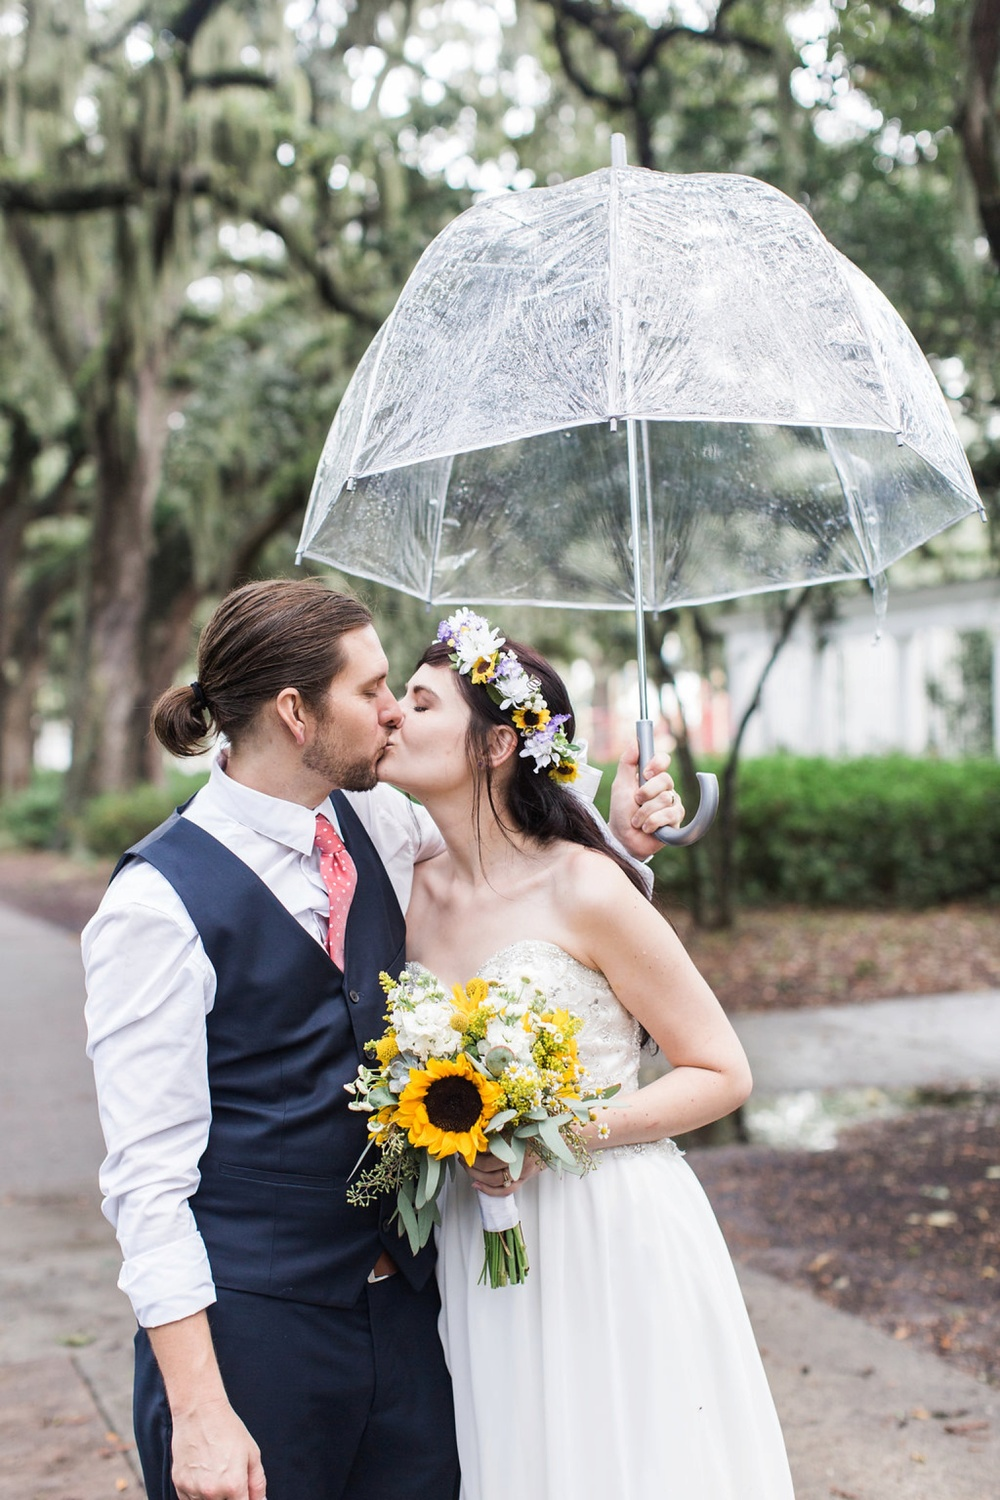 Apt_B_Photo_Savannah_Wedding_Photographer_Flower_Crown064.JPG